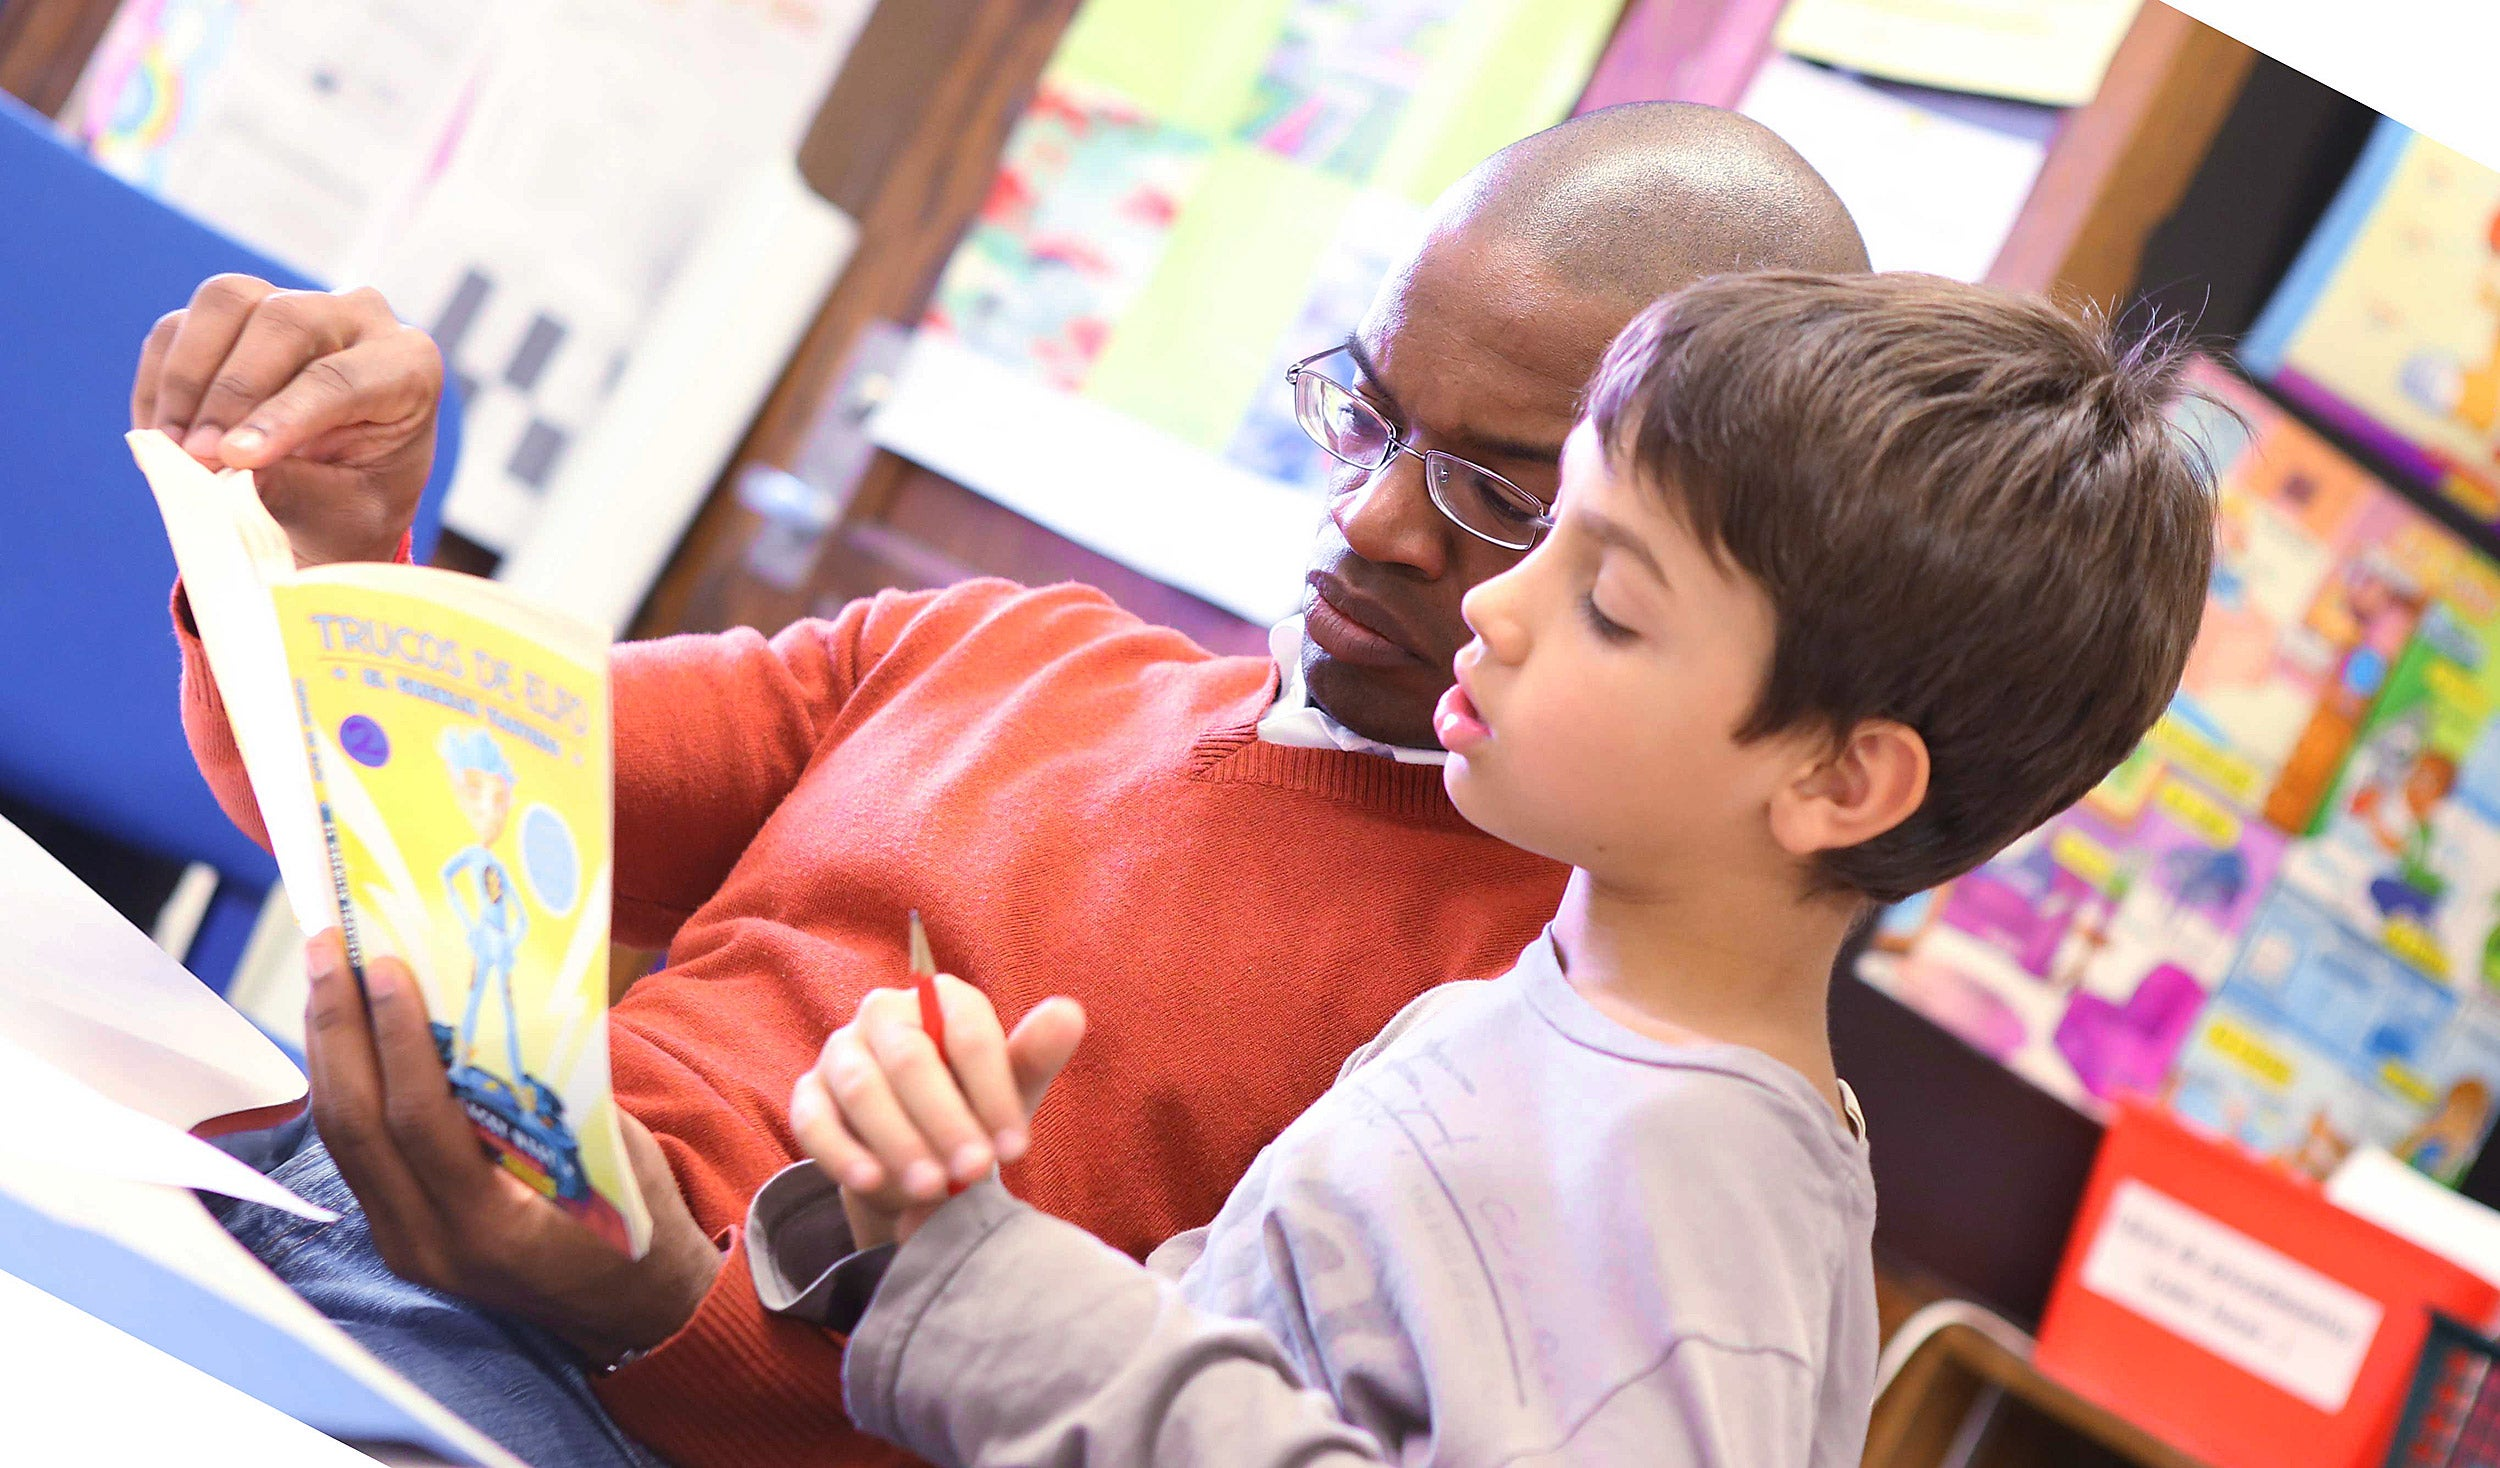 A $30 million grant from the Chan Zuckerberg Initiative will launch Reach Every Reader, a literacy program that combines the expertise from both Harvard Graduate School of Education and MIT.